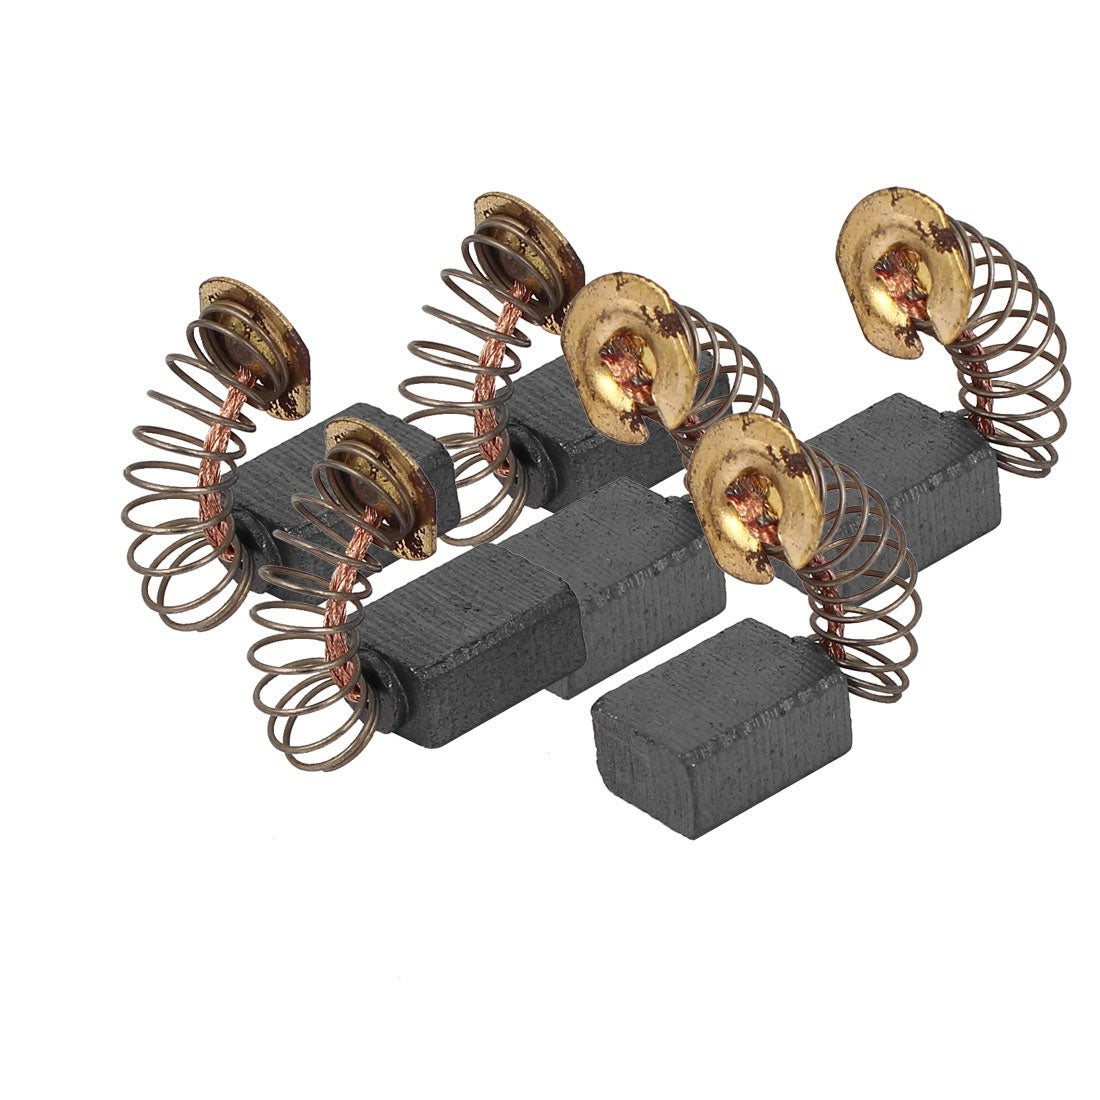 6 Pcs Replacement Motor Carbon Brushes 12mm x 9mm x 6mm for Electric Motors